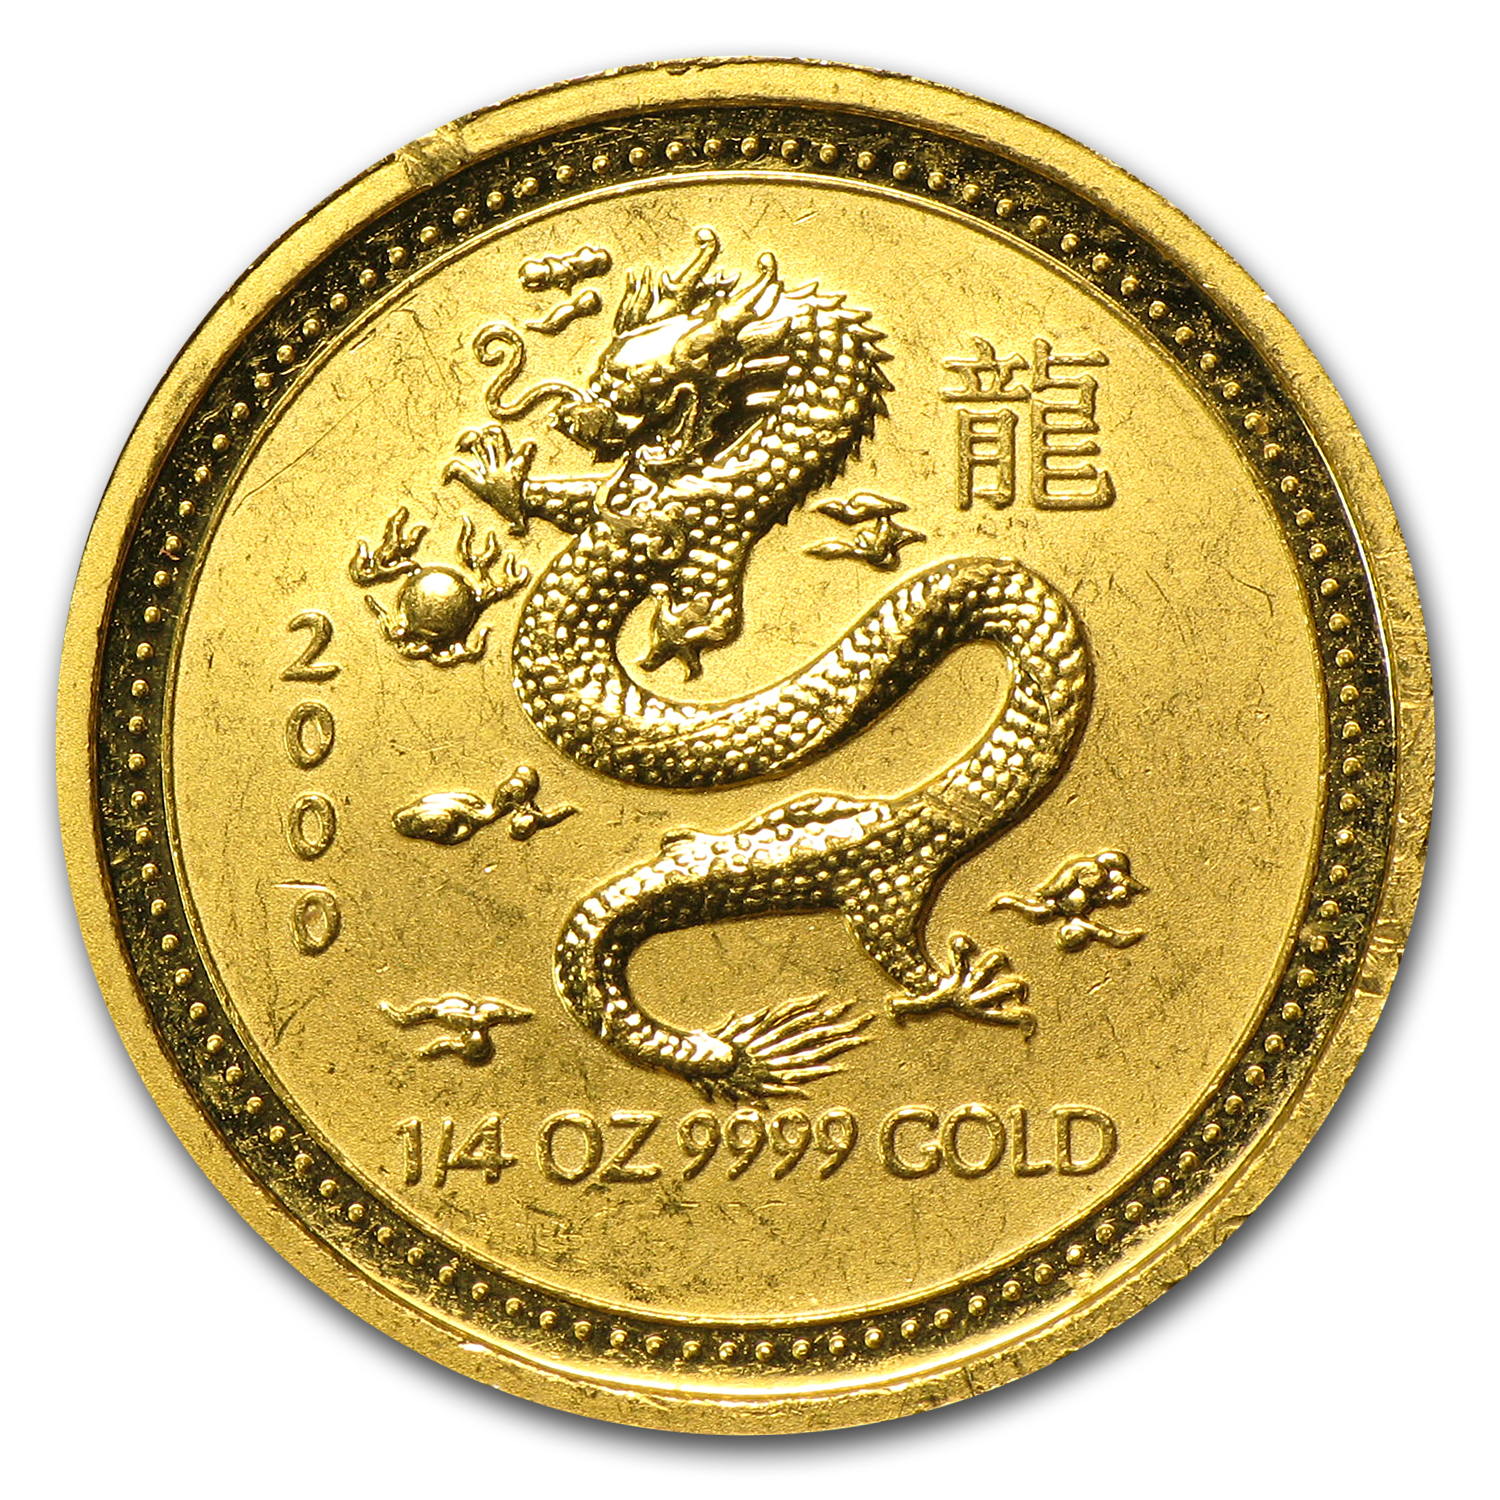 2000 1/4 oz Gold Year of the Dragon Lunar Coin SI (Abrasions)